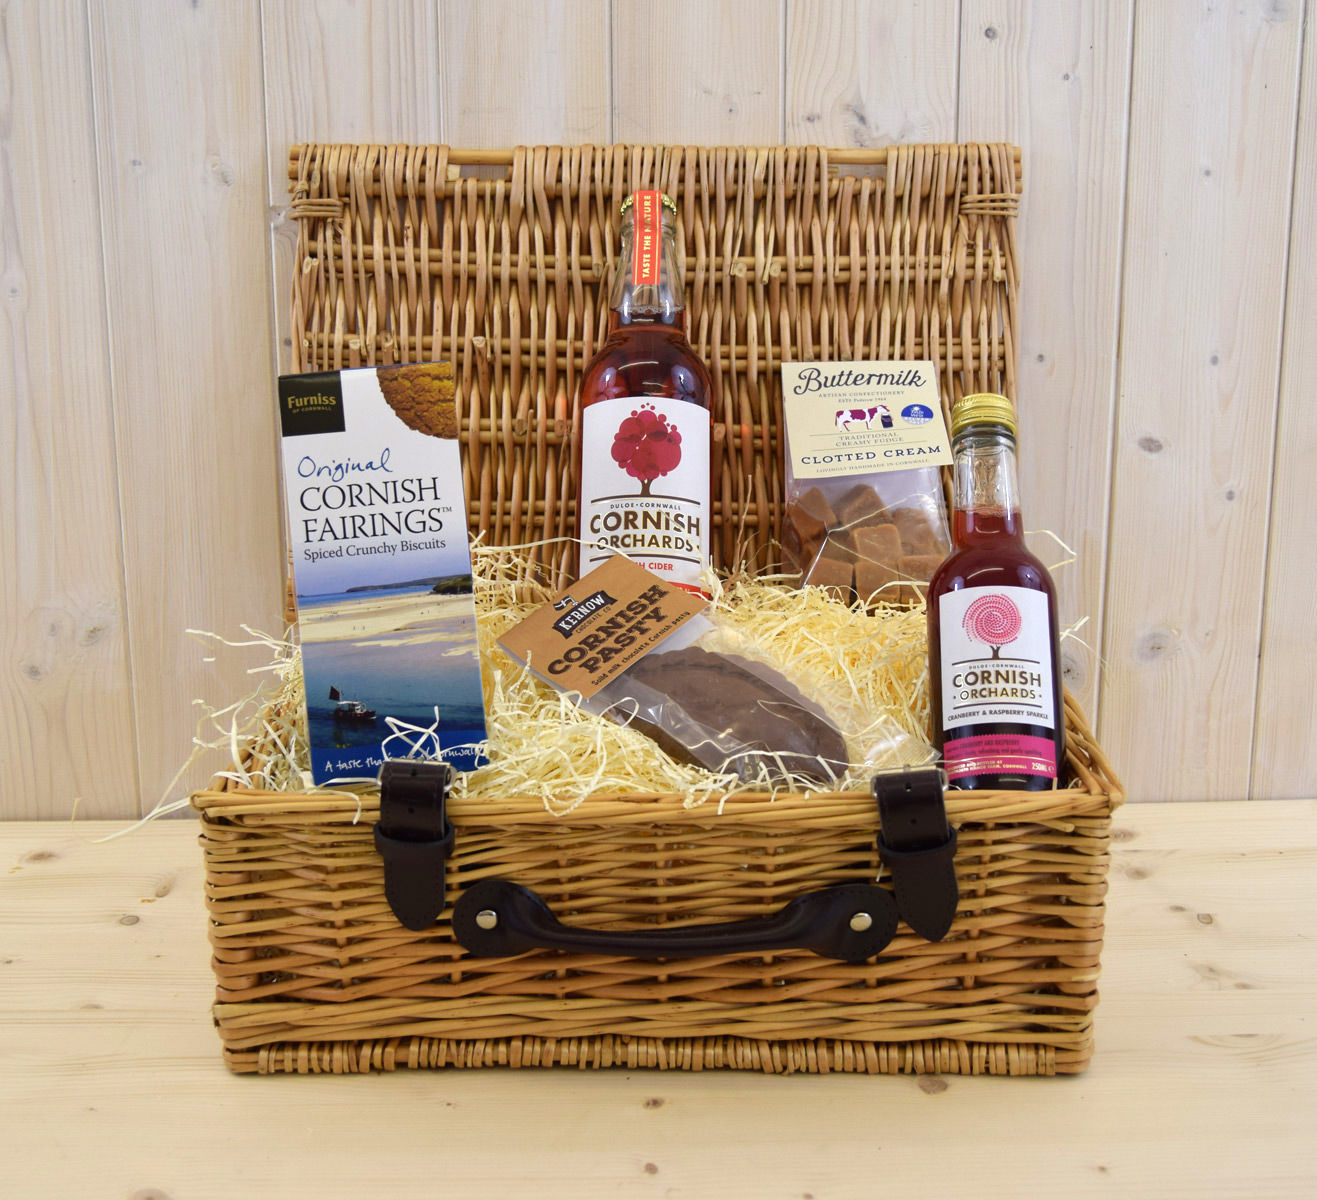 Includes our luxury Cornish Orchards cranberry & raspberry sparkle, Kernow's solid milk chocolate pasty and Cornish Fairing spiced biscuits.